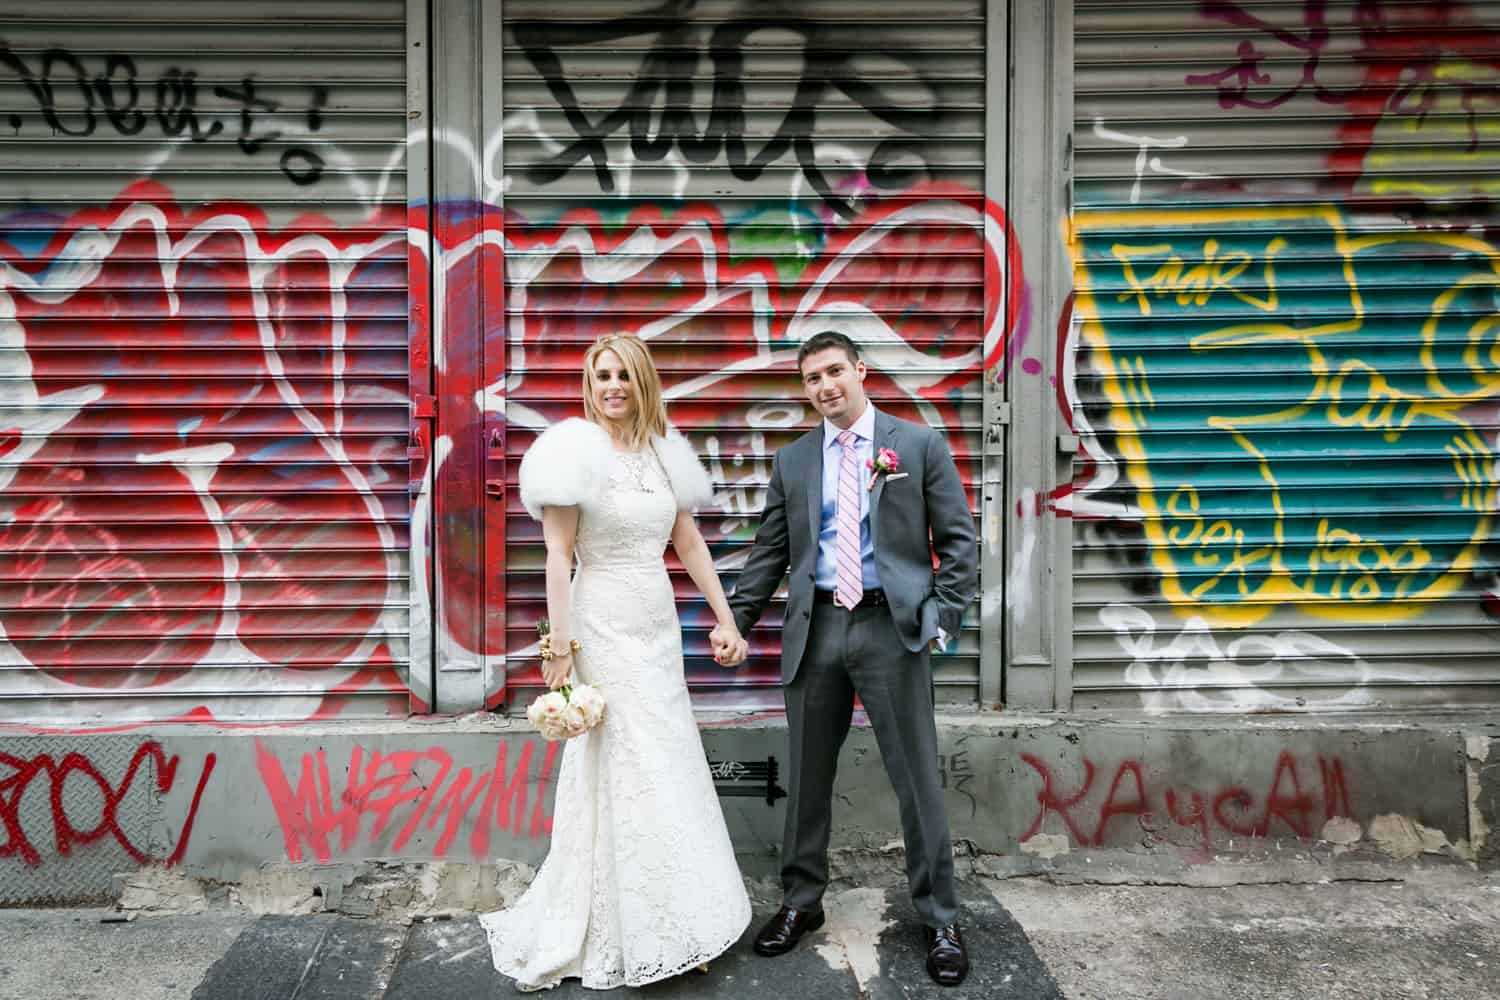 Bride and groom holding hands in front of graffiti covered metal gate